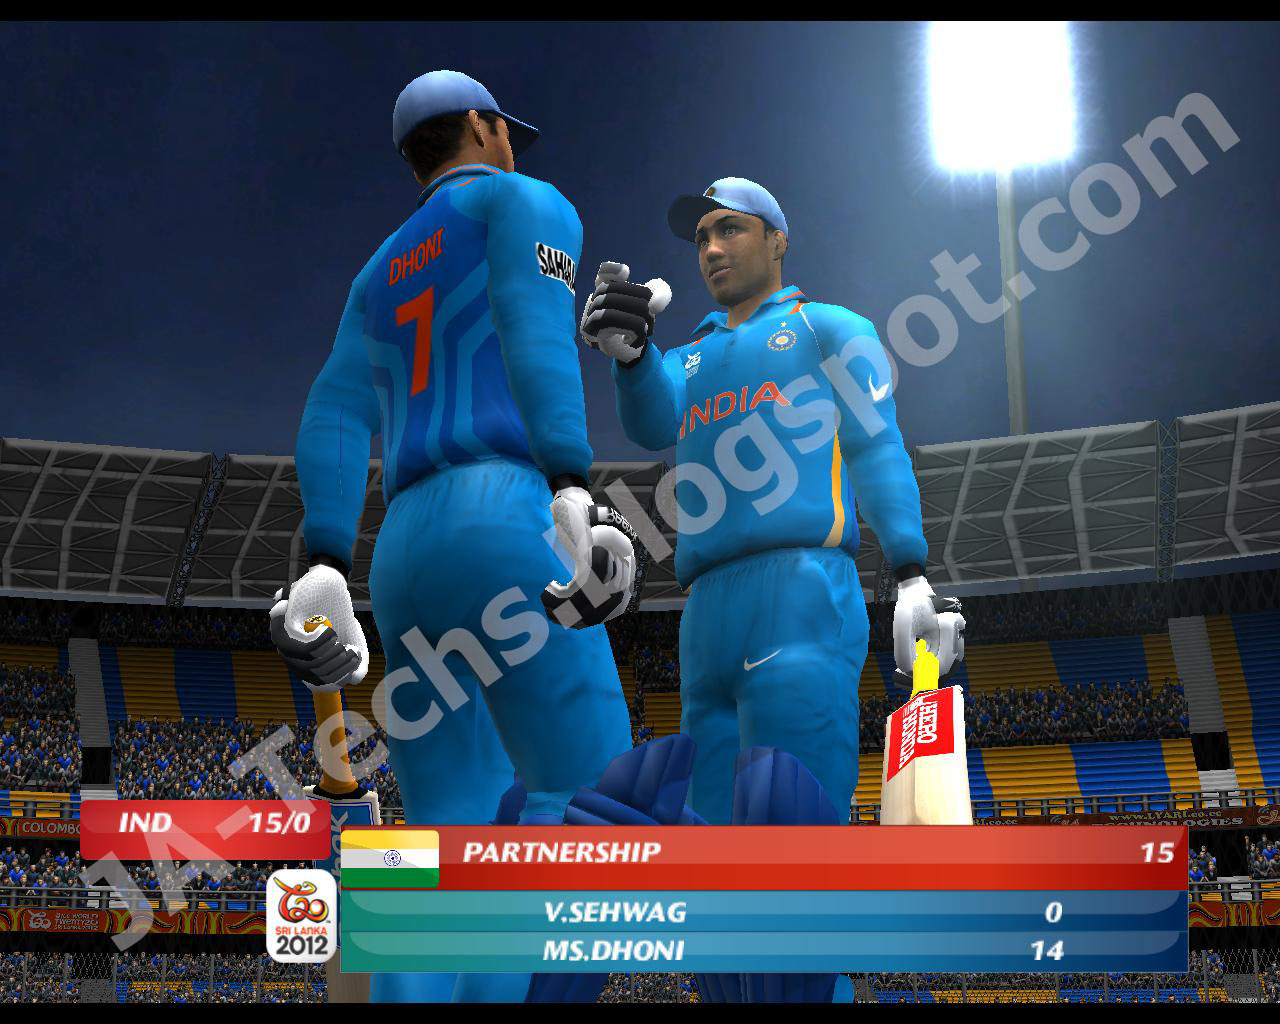 Ipl t20 games online play